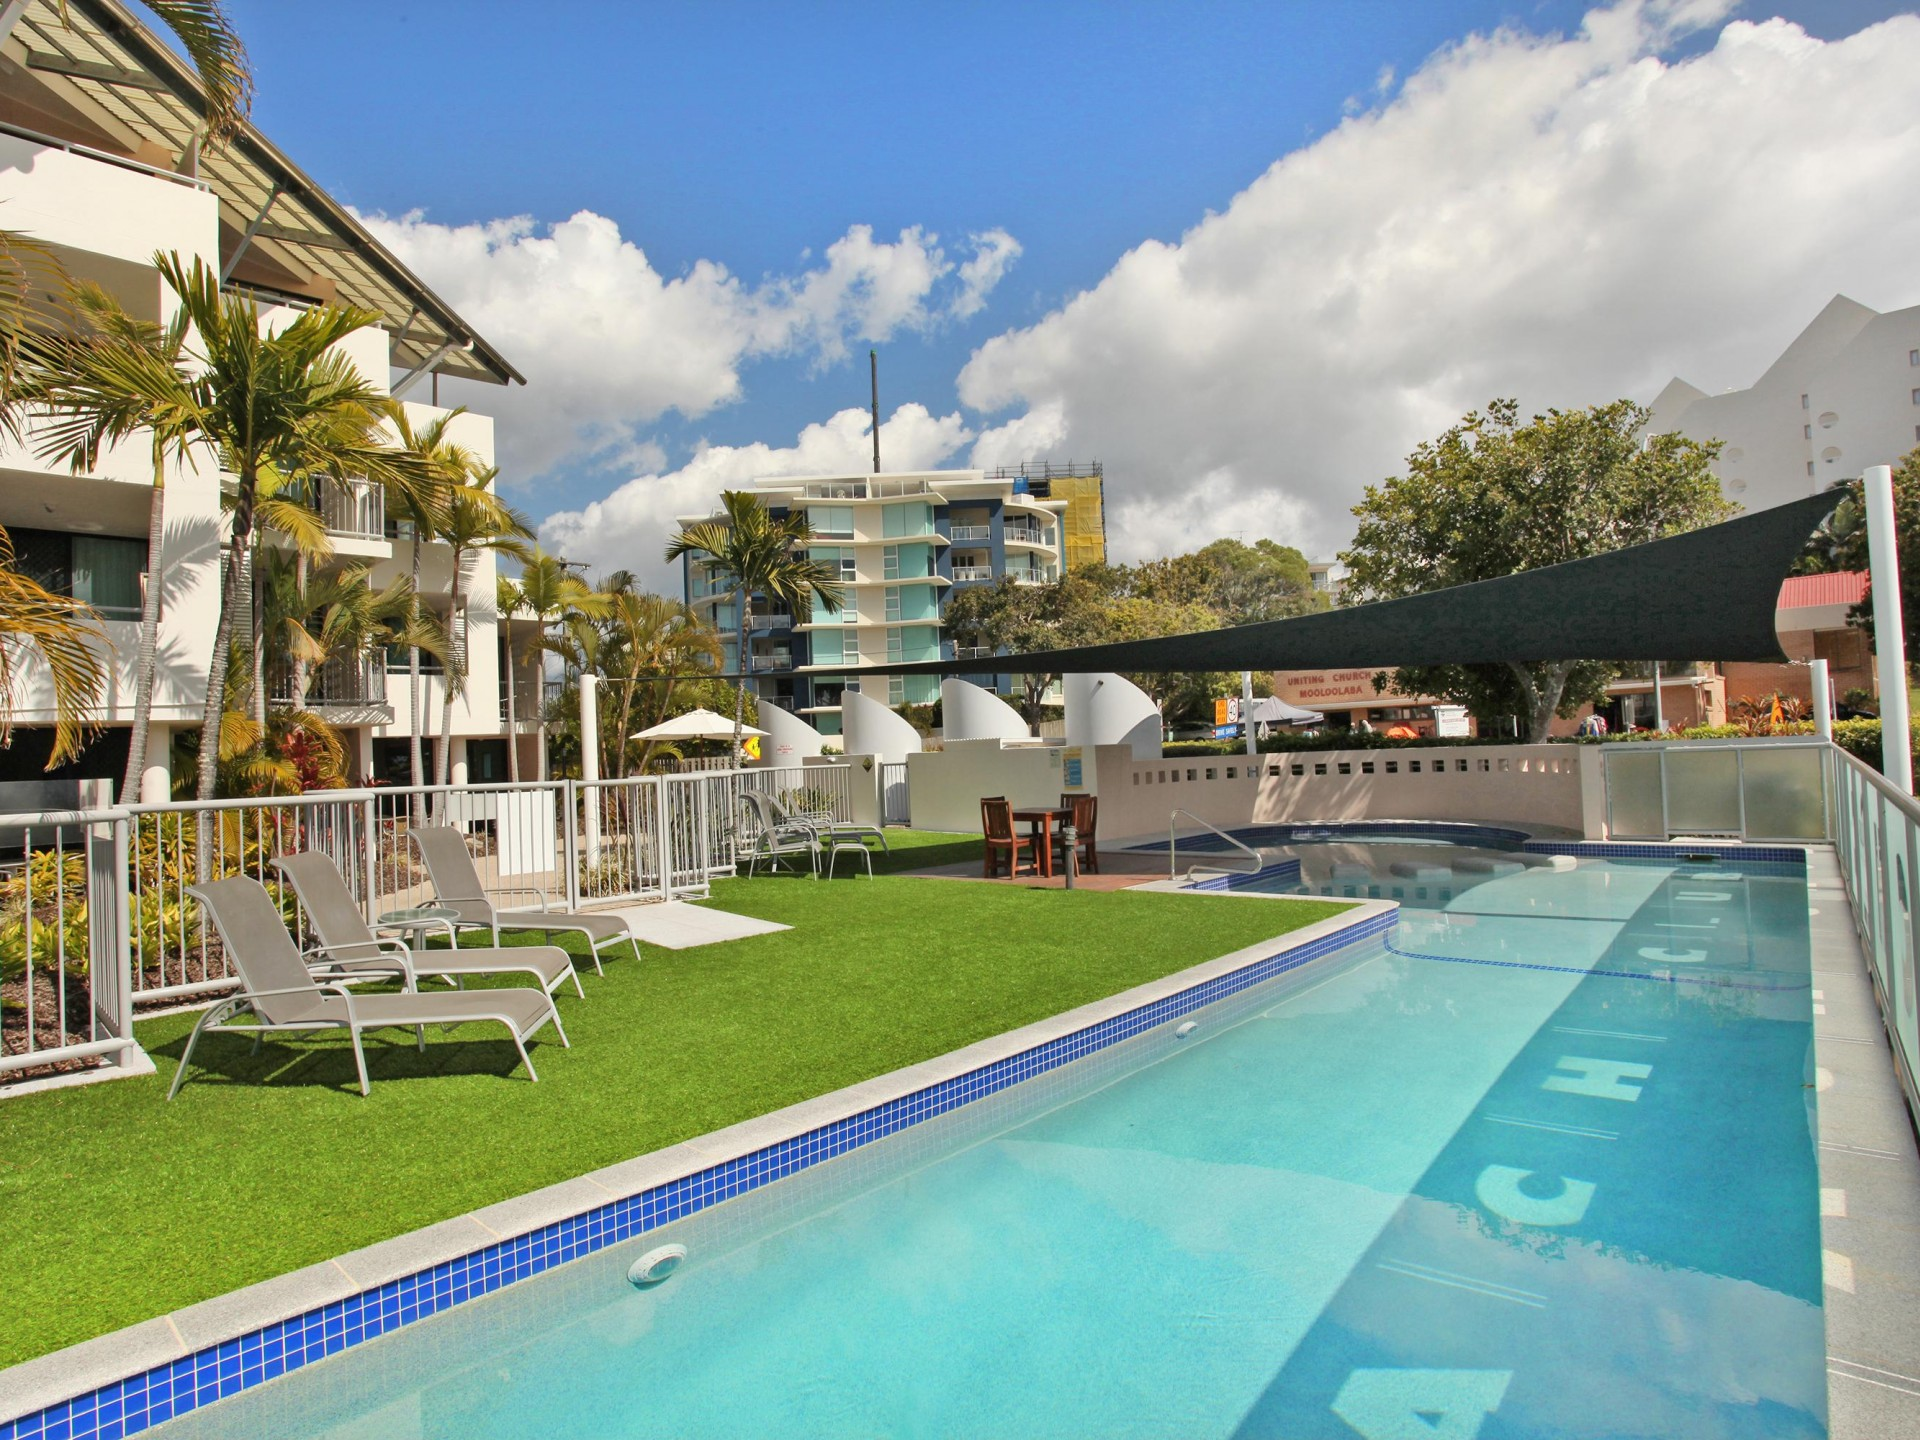 Mooloolaba Resort lifestyle within walking distance to the beach